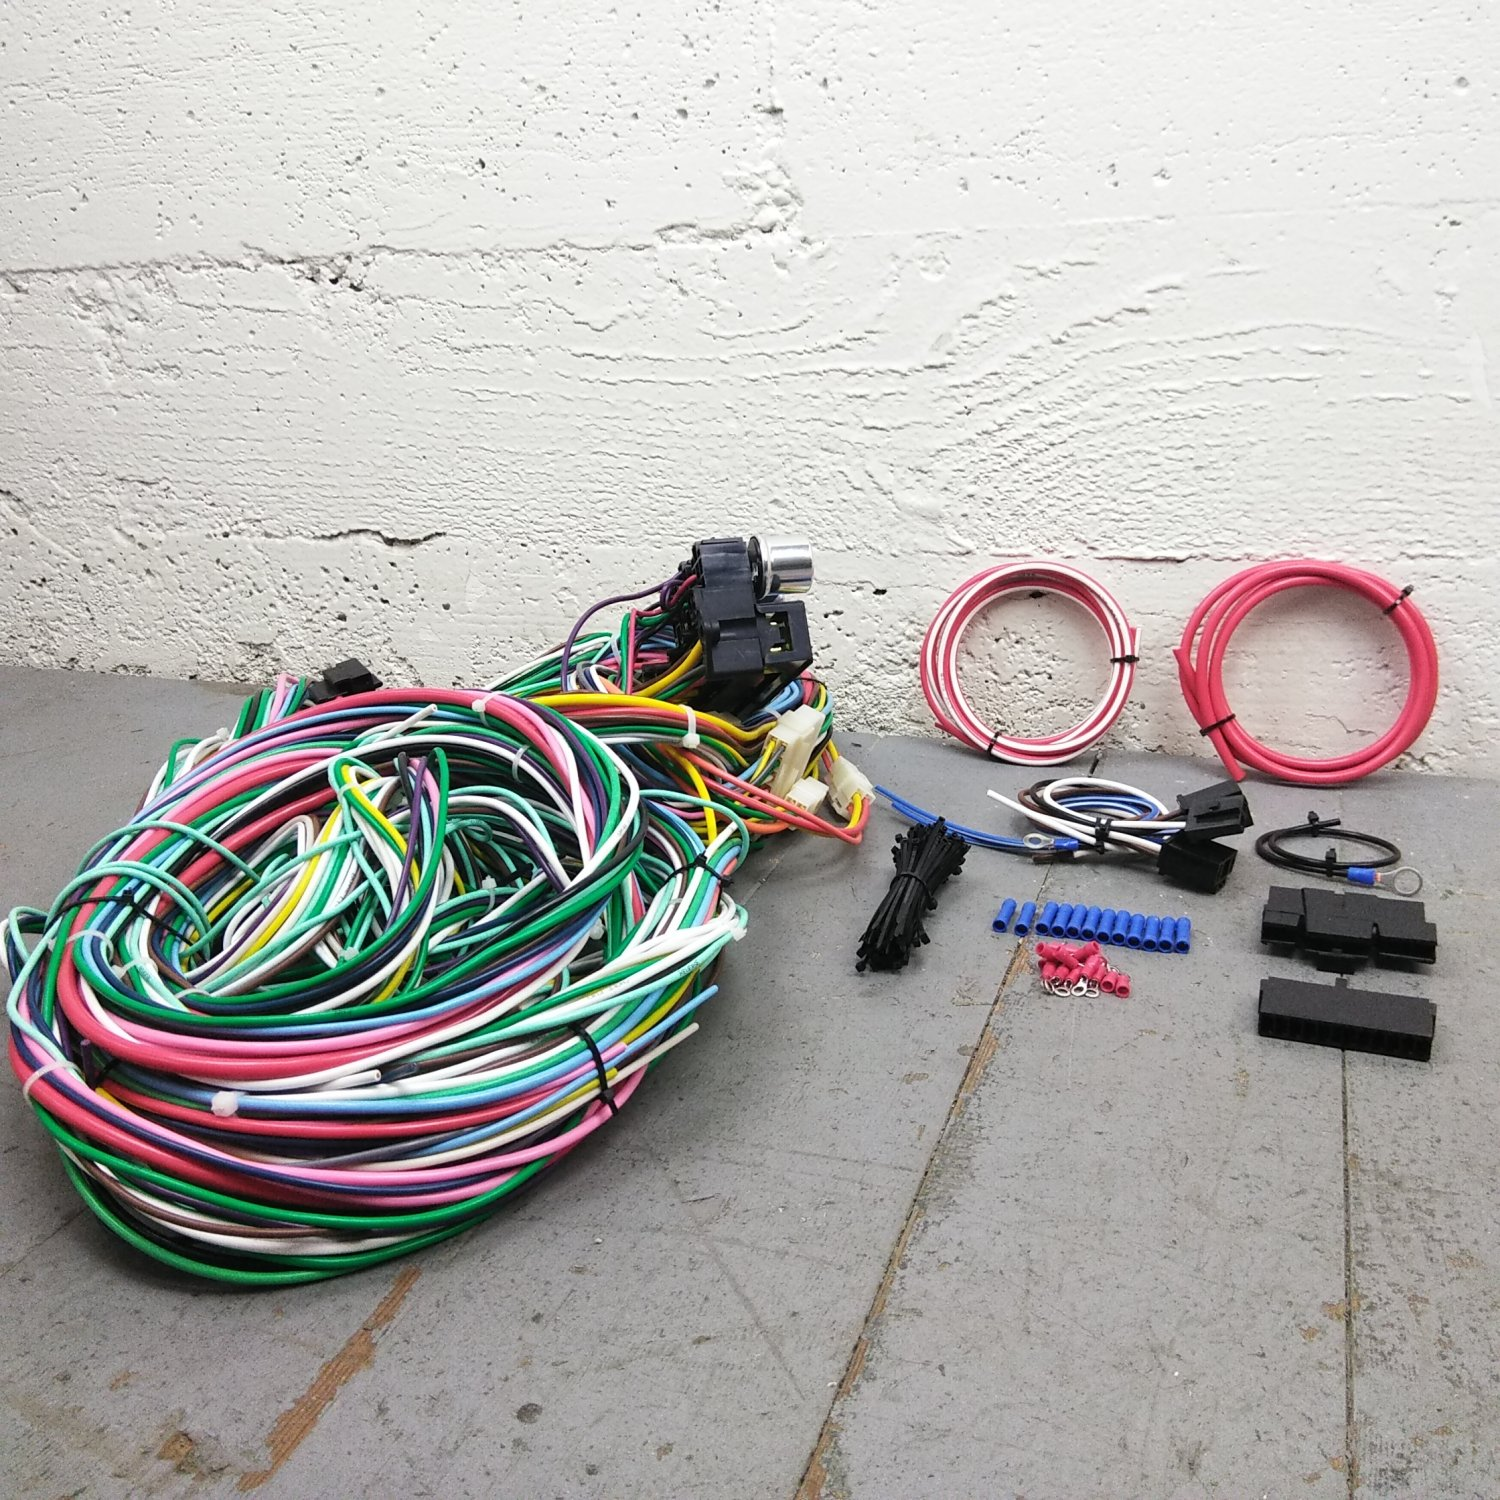 1966 - 1972 Dodge Coronet Wire Harness Upgrade Kit fits painless circuit  new KIC. Bar_Product_Description_C